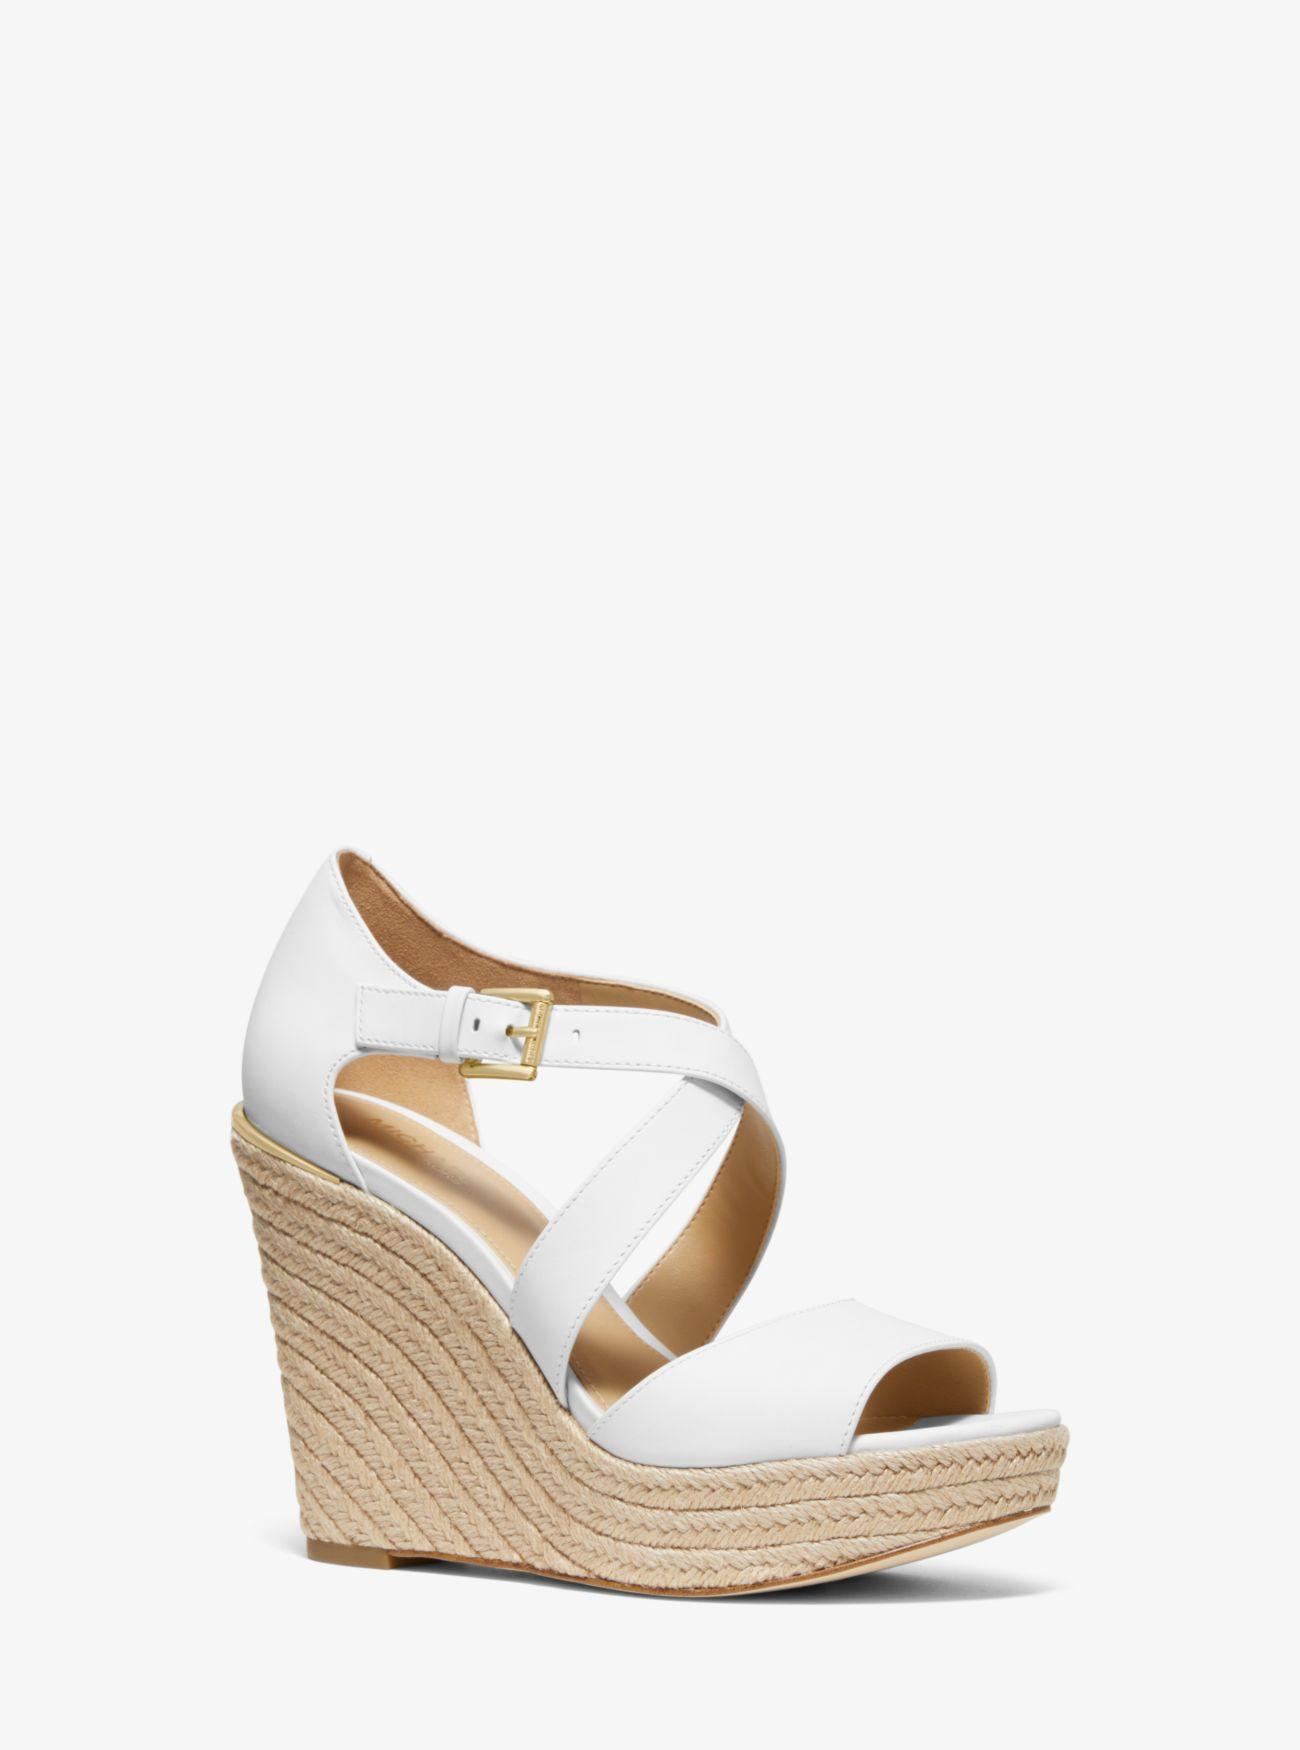 6c52541d8a1 Michael Kors Abbott Leather Wedge in White - Lyst